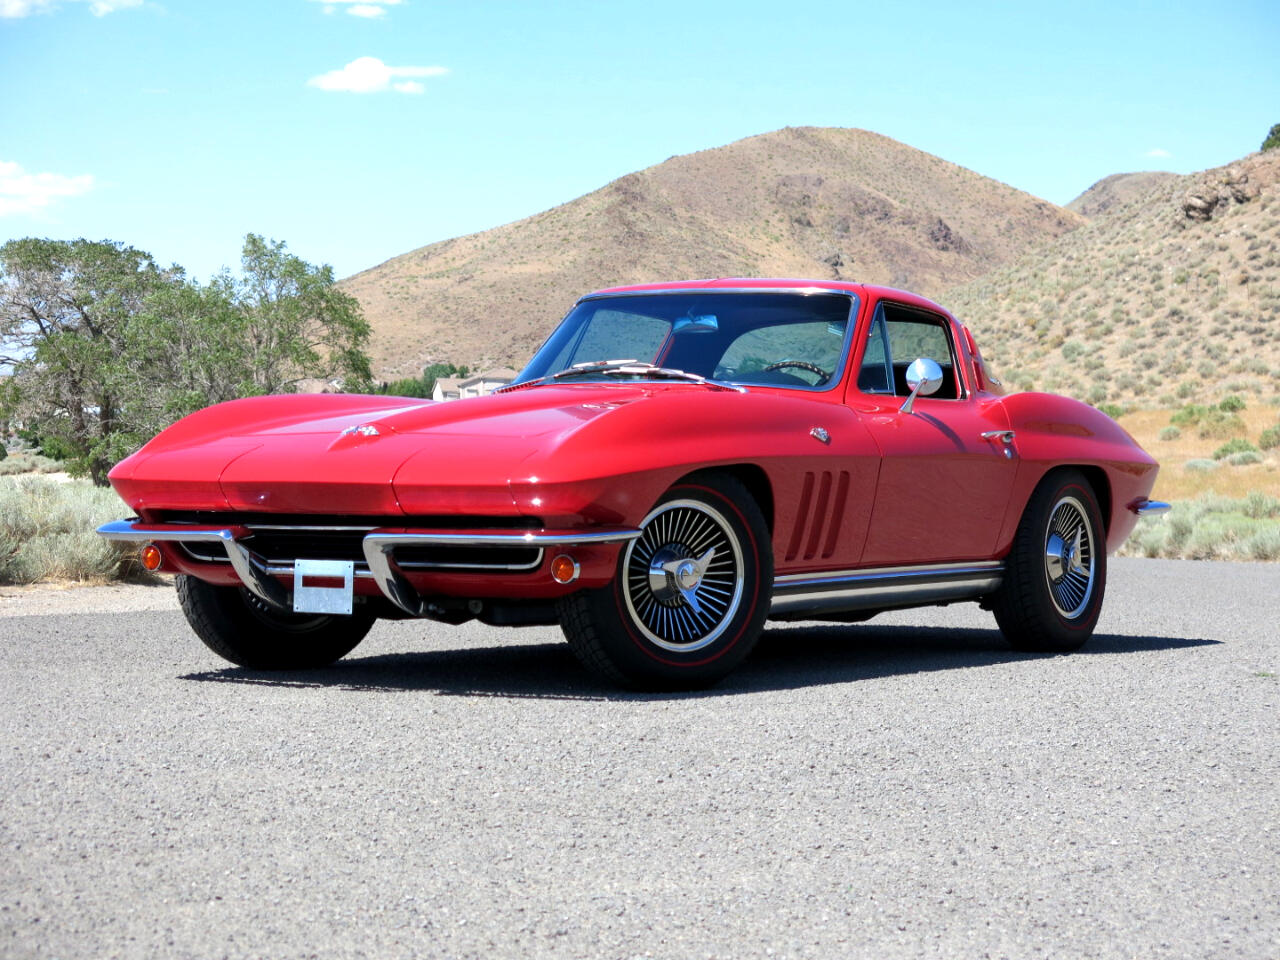 Chevrolet Corvette Coupe 1965